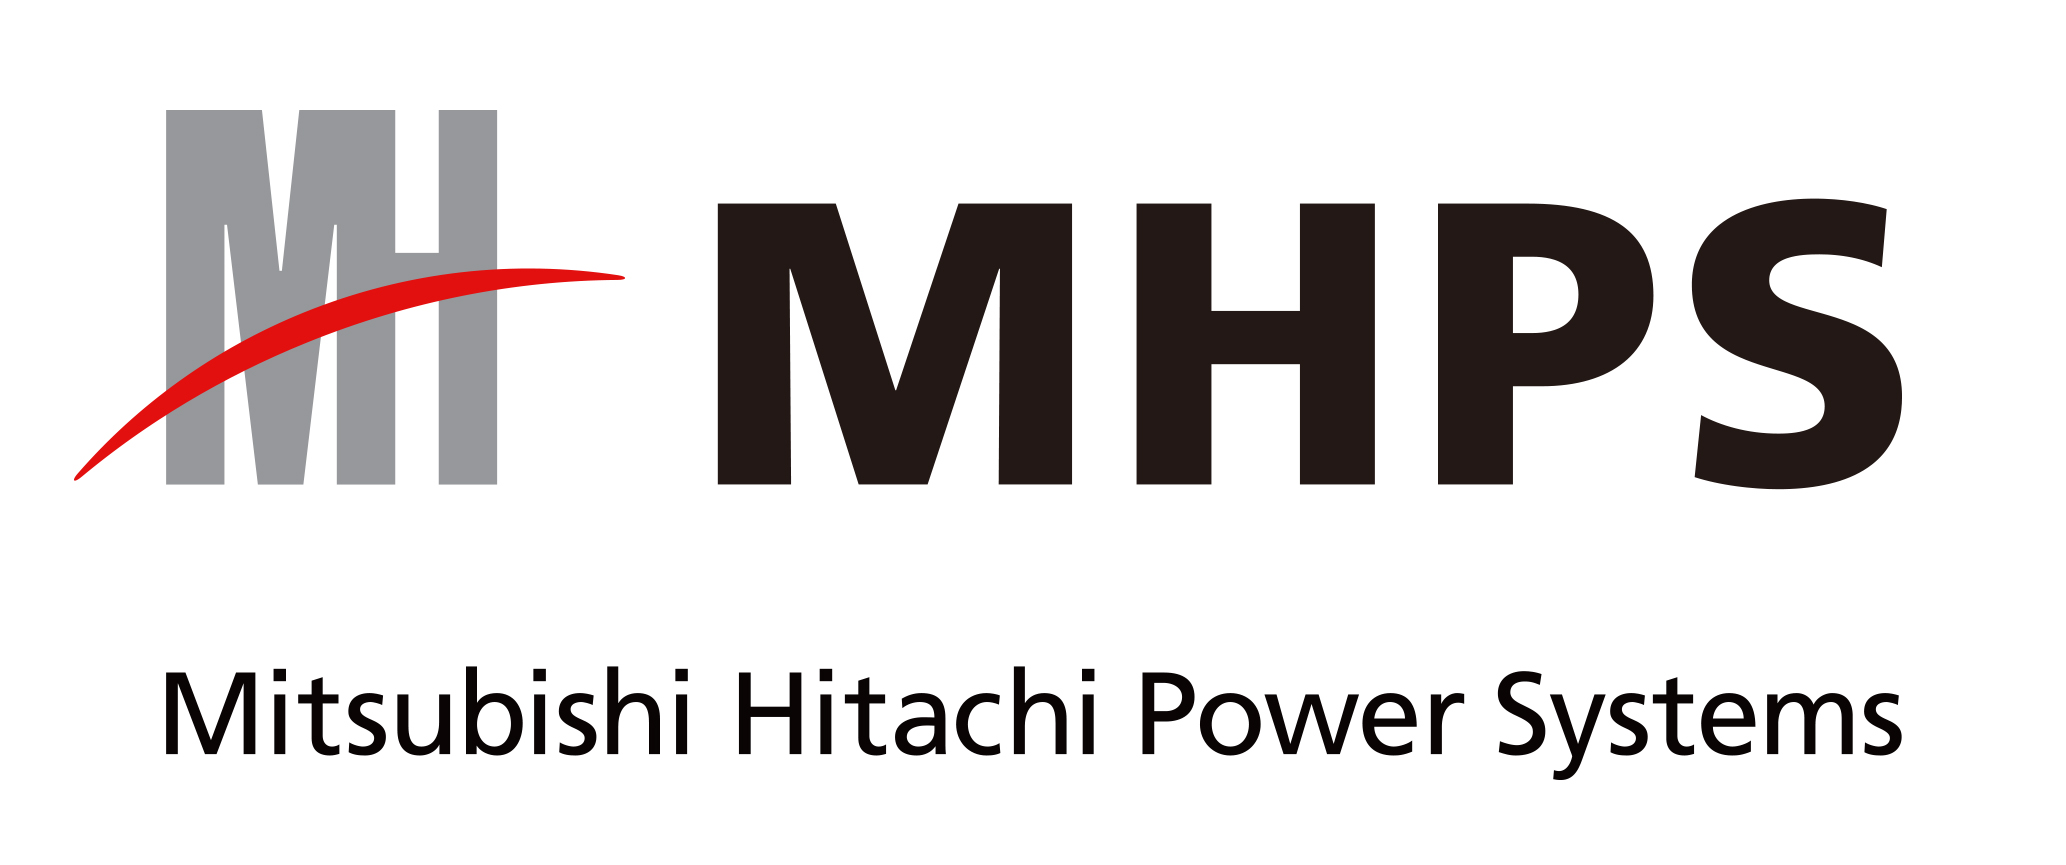 Energy Policy Summit Line Up Mitsubishi Hitachi Power Systems Ltd With The Support Of Innoenergy Enel Iberdrola